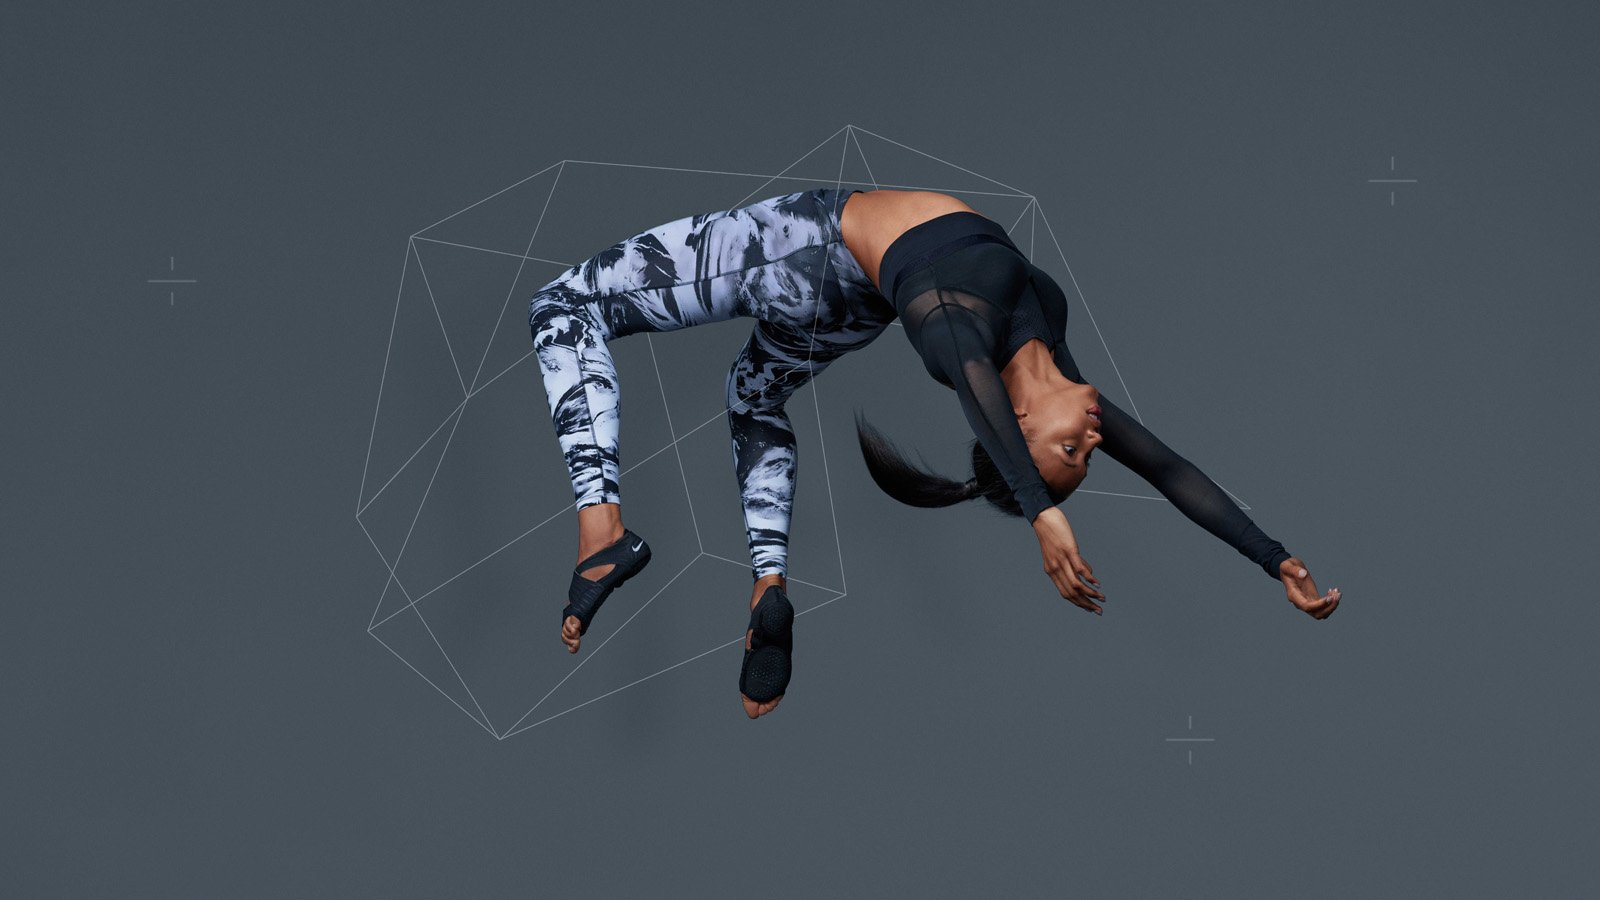 NikeWomen_FA15_Lookbook_MorganLake_WT_Geometry_2_original.jpg